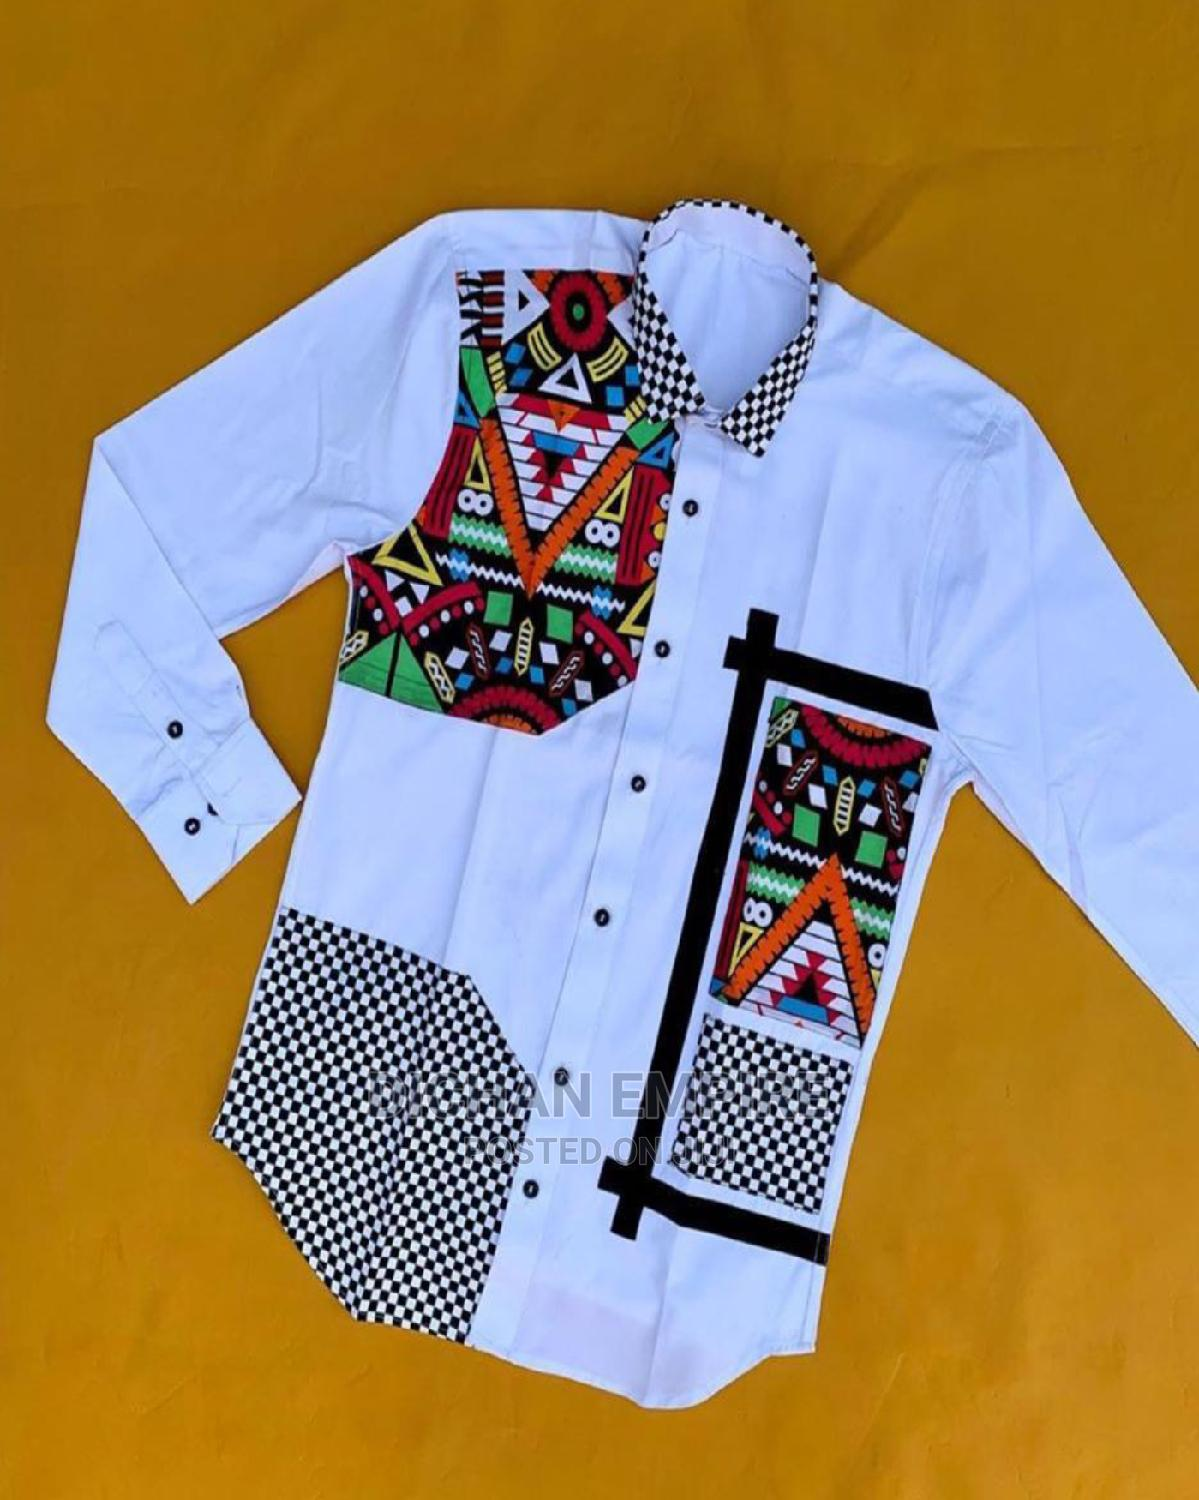 Senator Wears For Men,Very Affordable   Clothing for sale in Ikeja, Lagos State, Nigeria